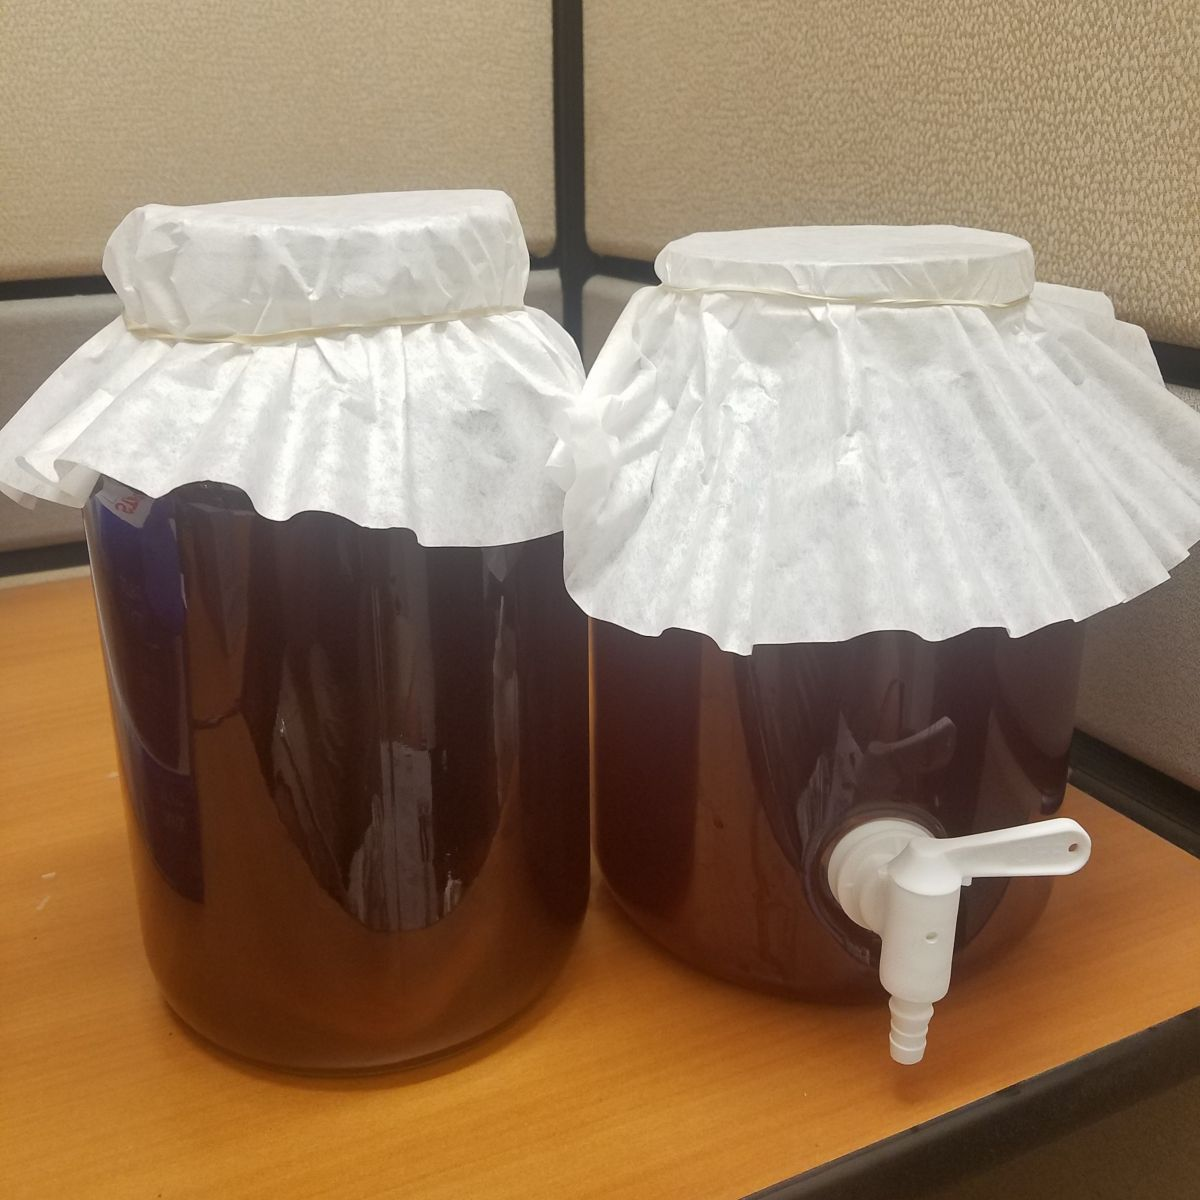 There are two methods for brewing kombucha